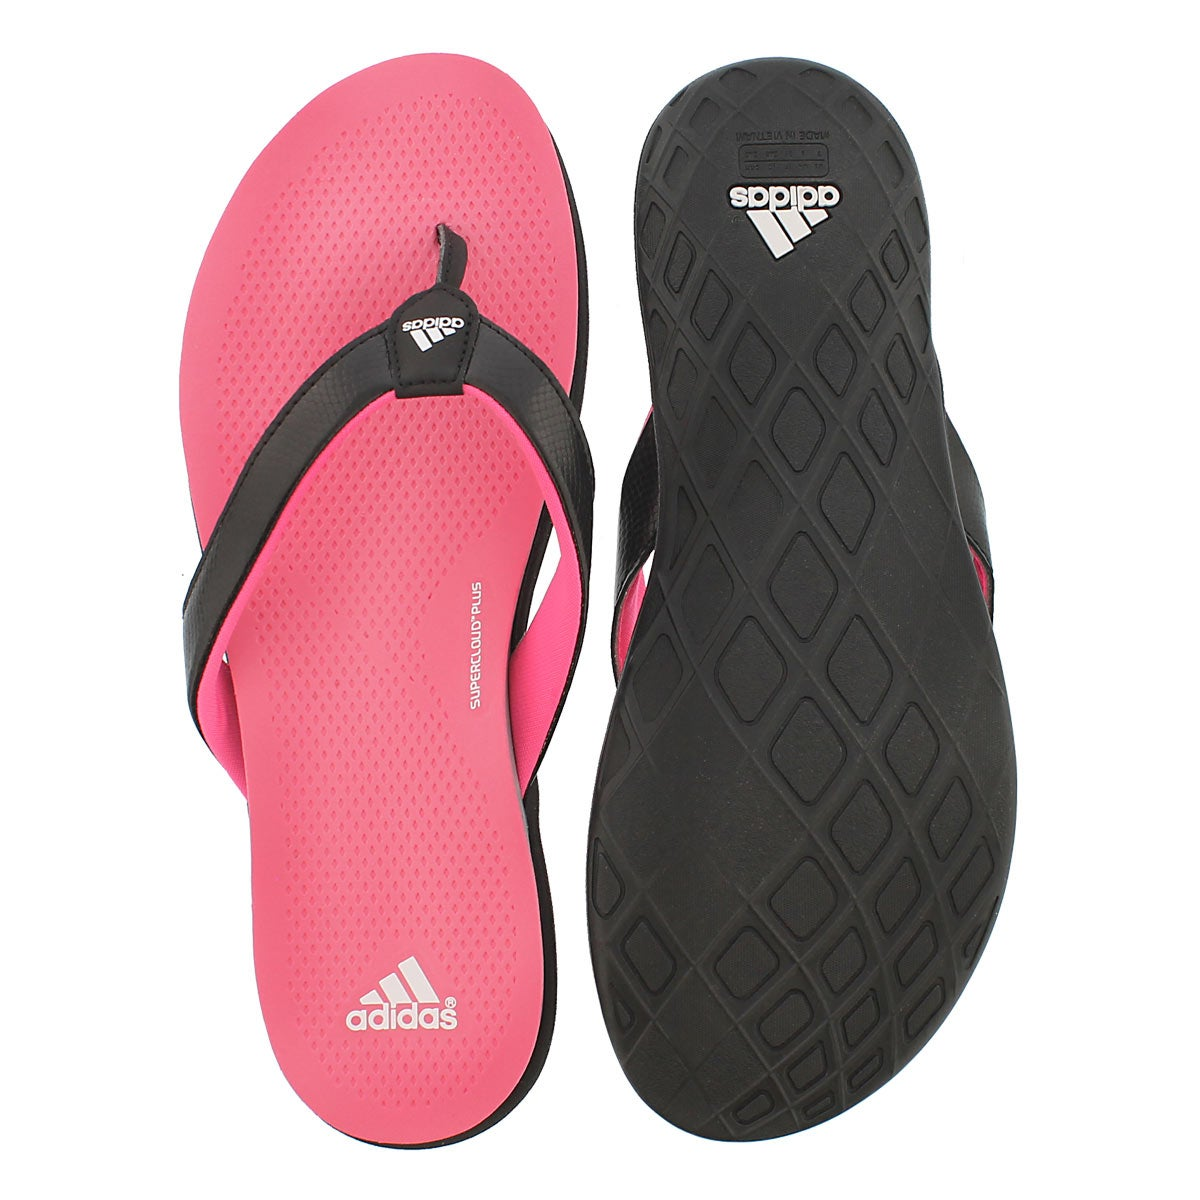 Lds Supercloud Plus blk/pnk thong sandal